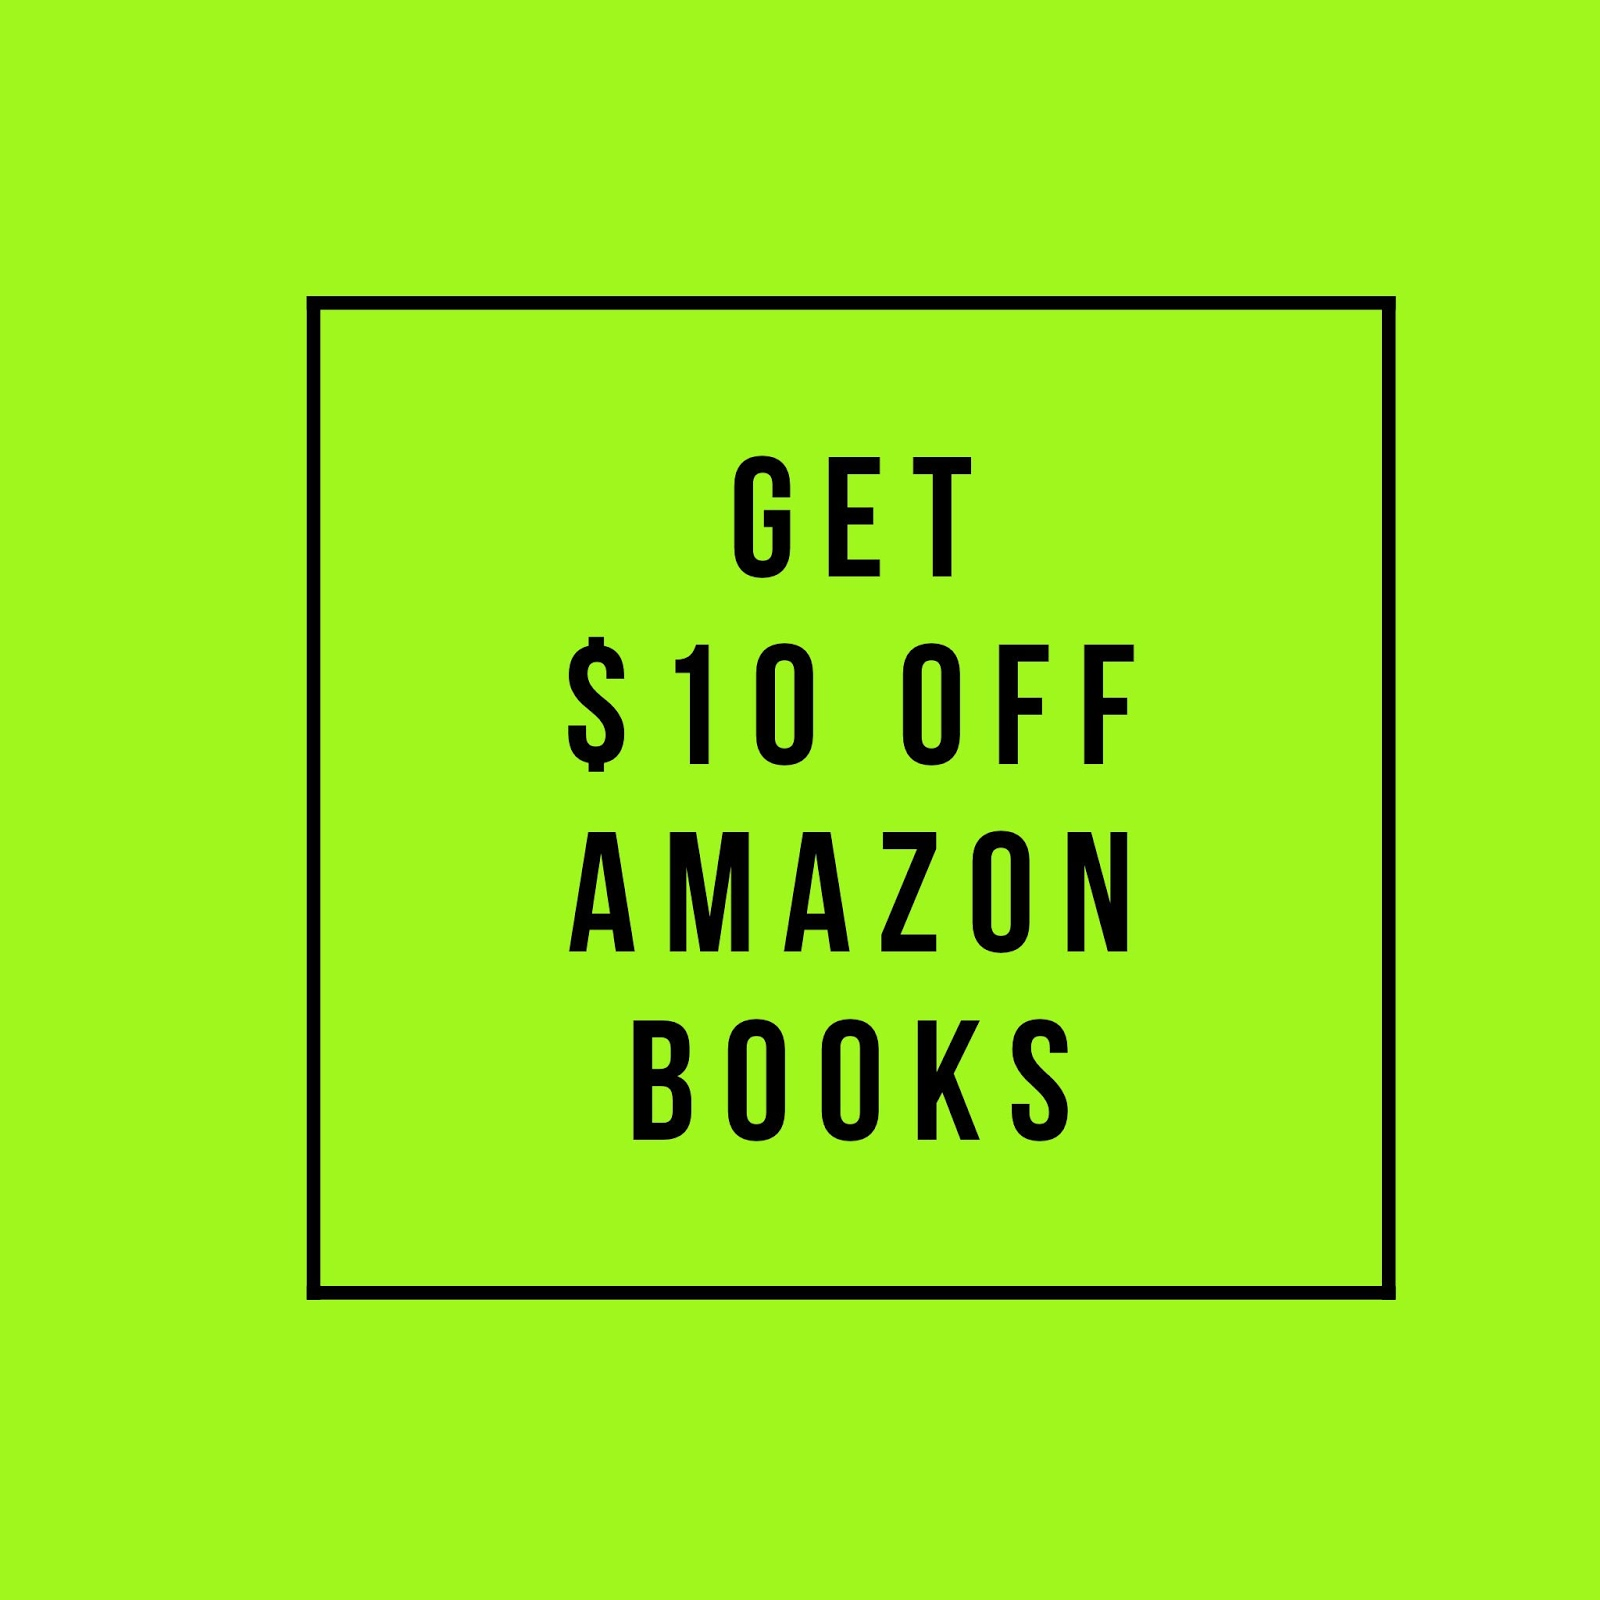 Amazon book coupon code